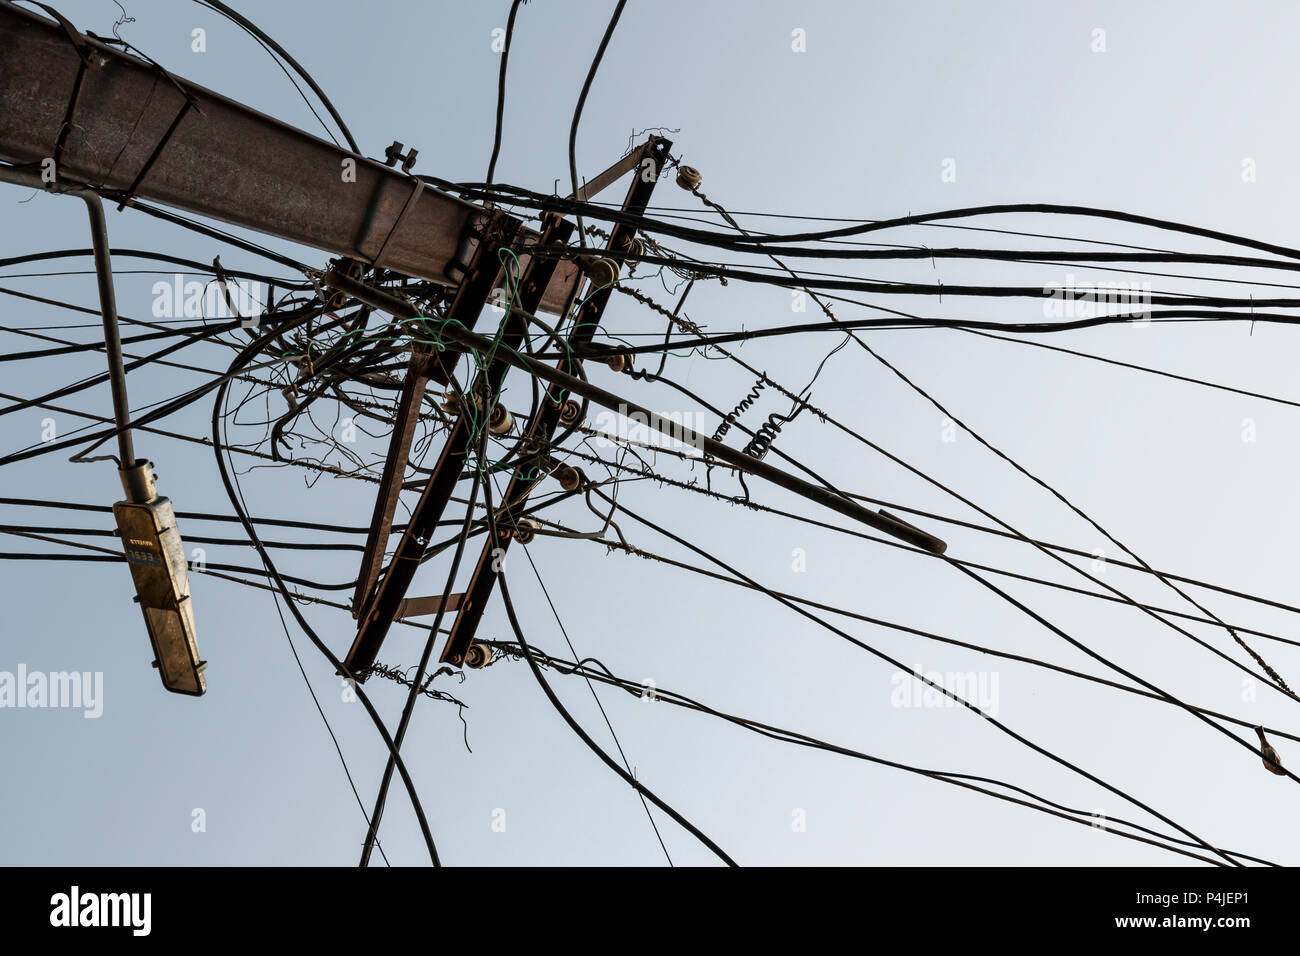 Electric Transmission Line India Stock Photos & Electric ...